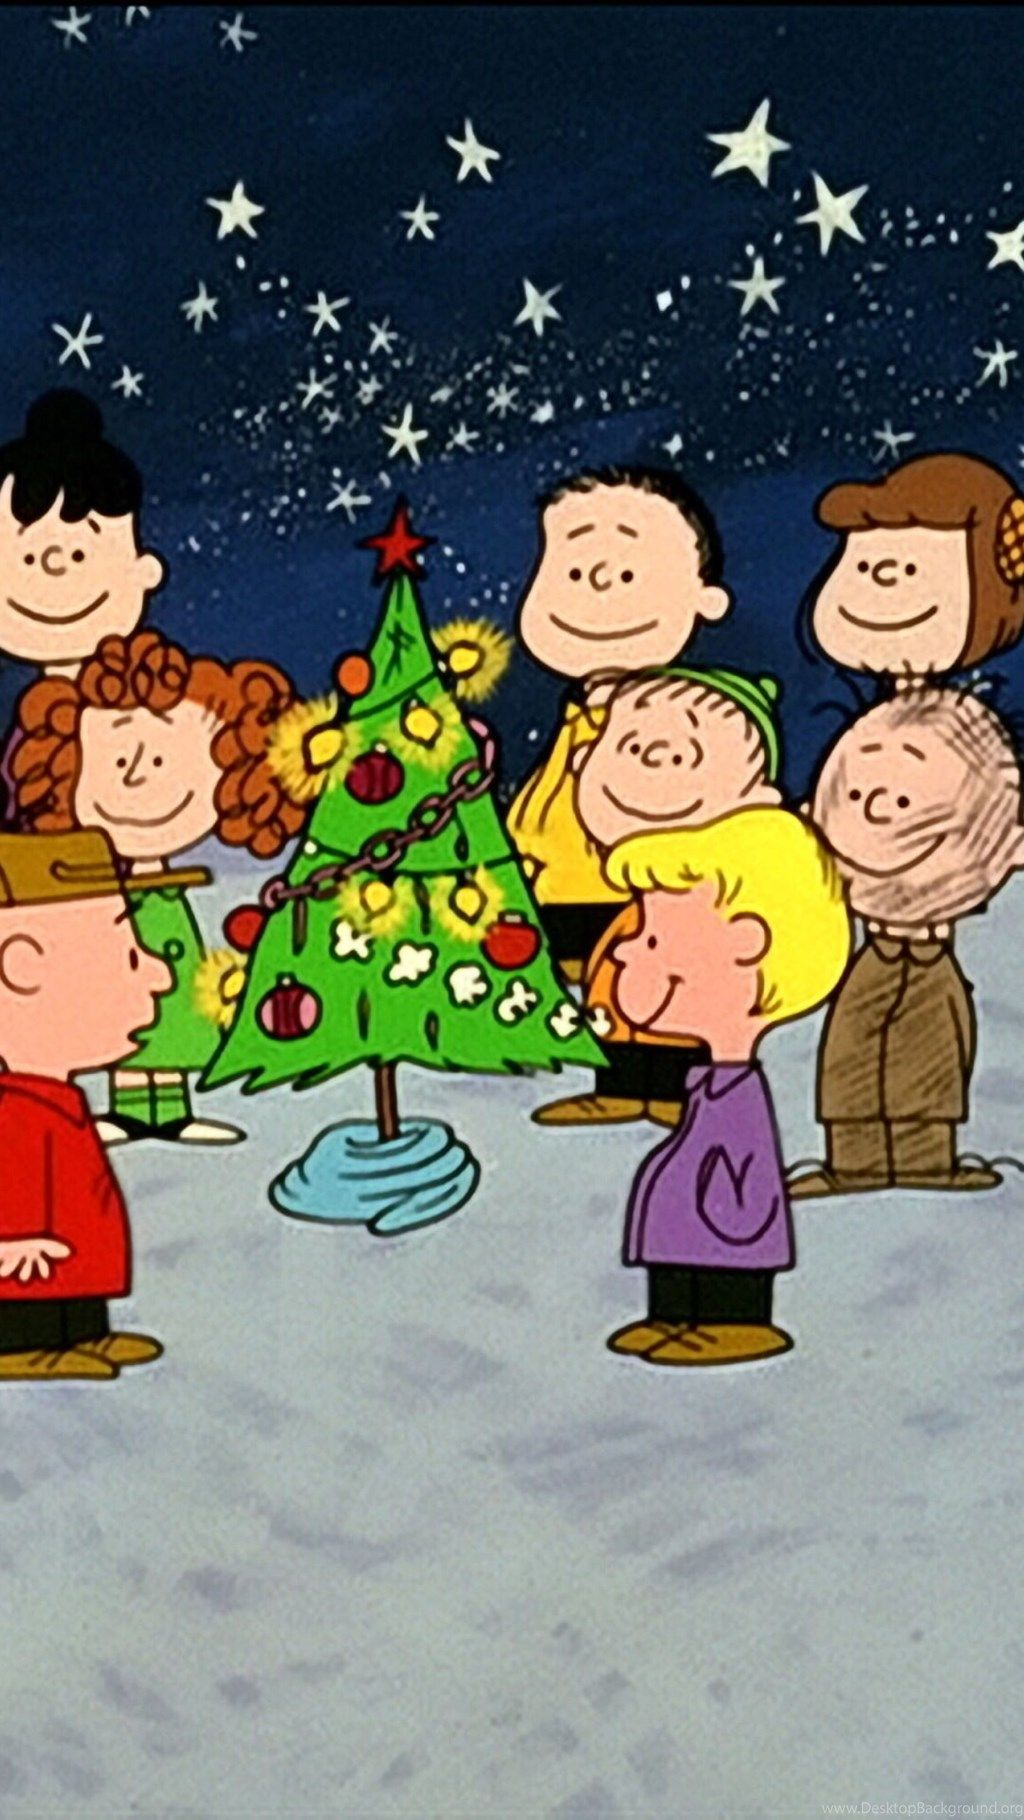 Download A Charlie Brown Christmas Wallpapers For Iphone  Plus Desktop Background Desktop Background From The Above Display Resolutions For Popular